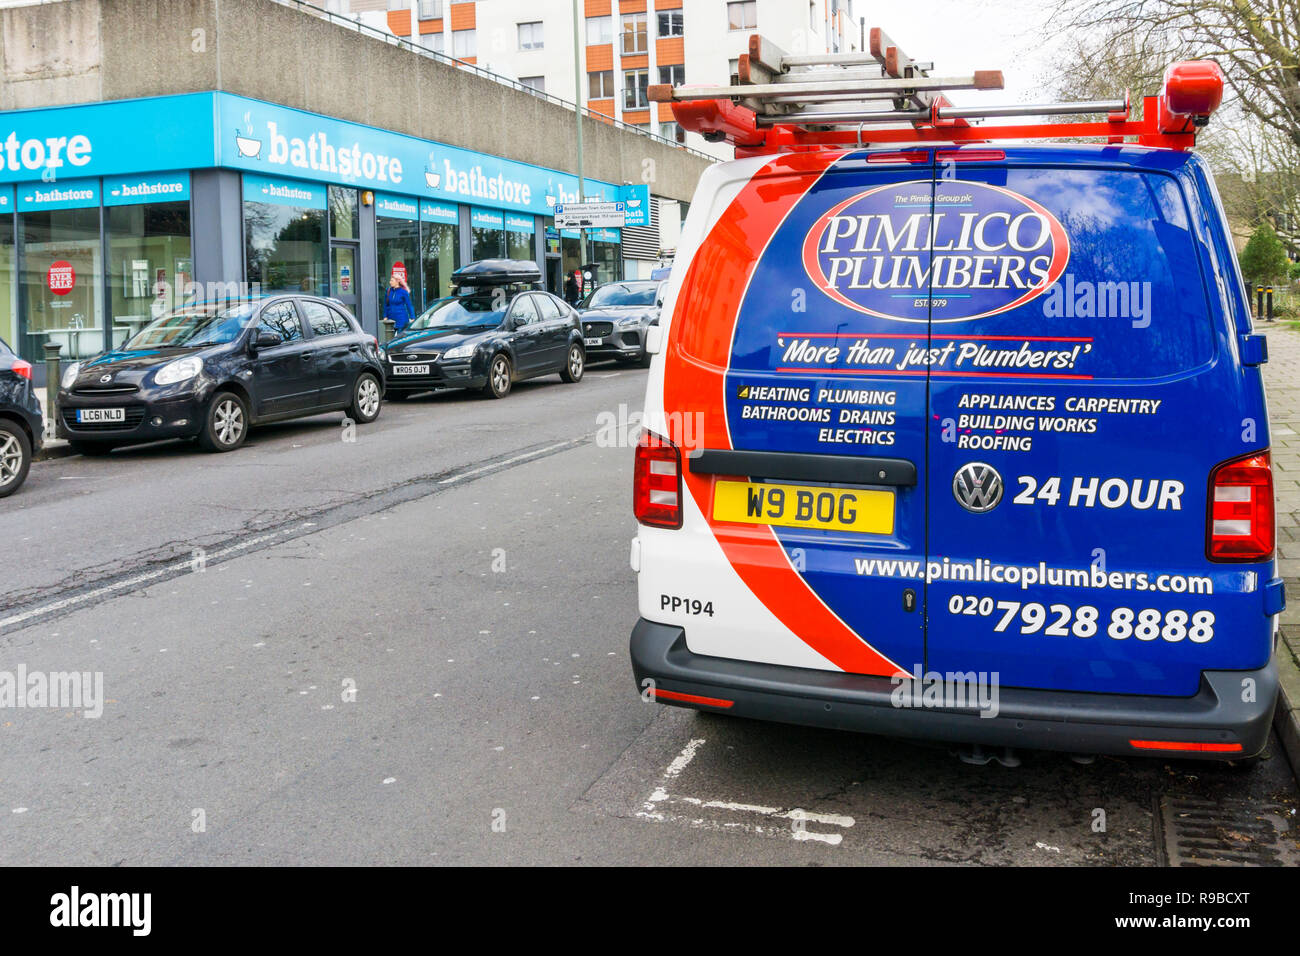 A Pimlico Plumbers van with a plumbing-related number plate. - Stock Image